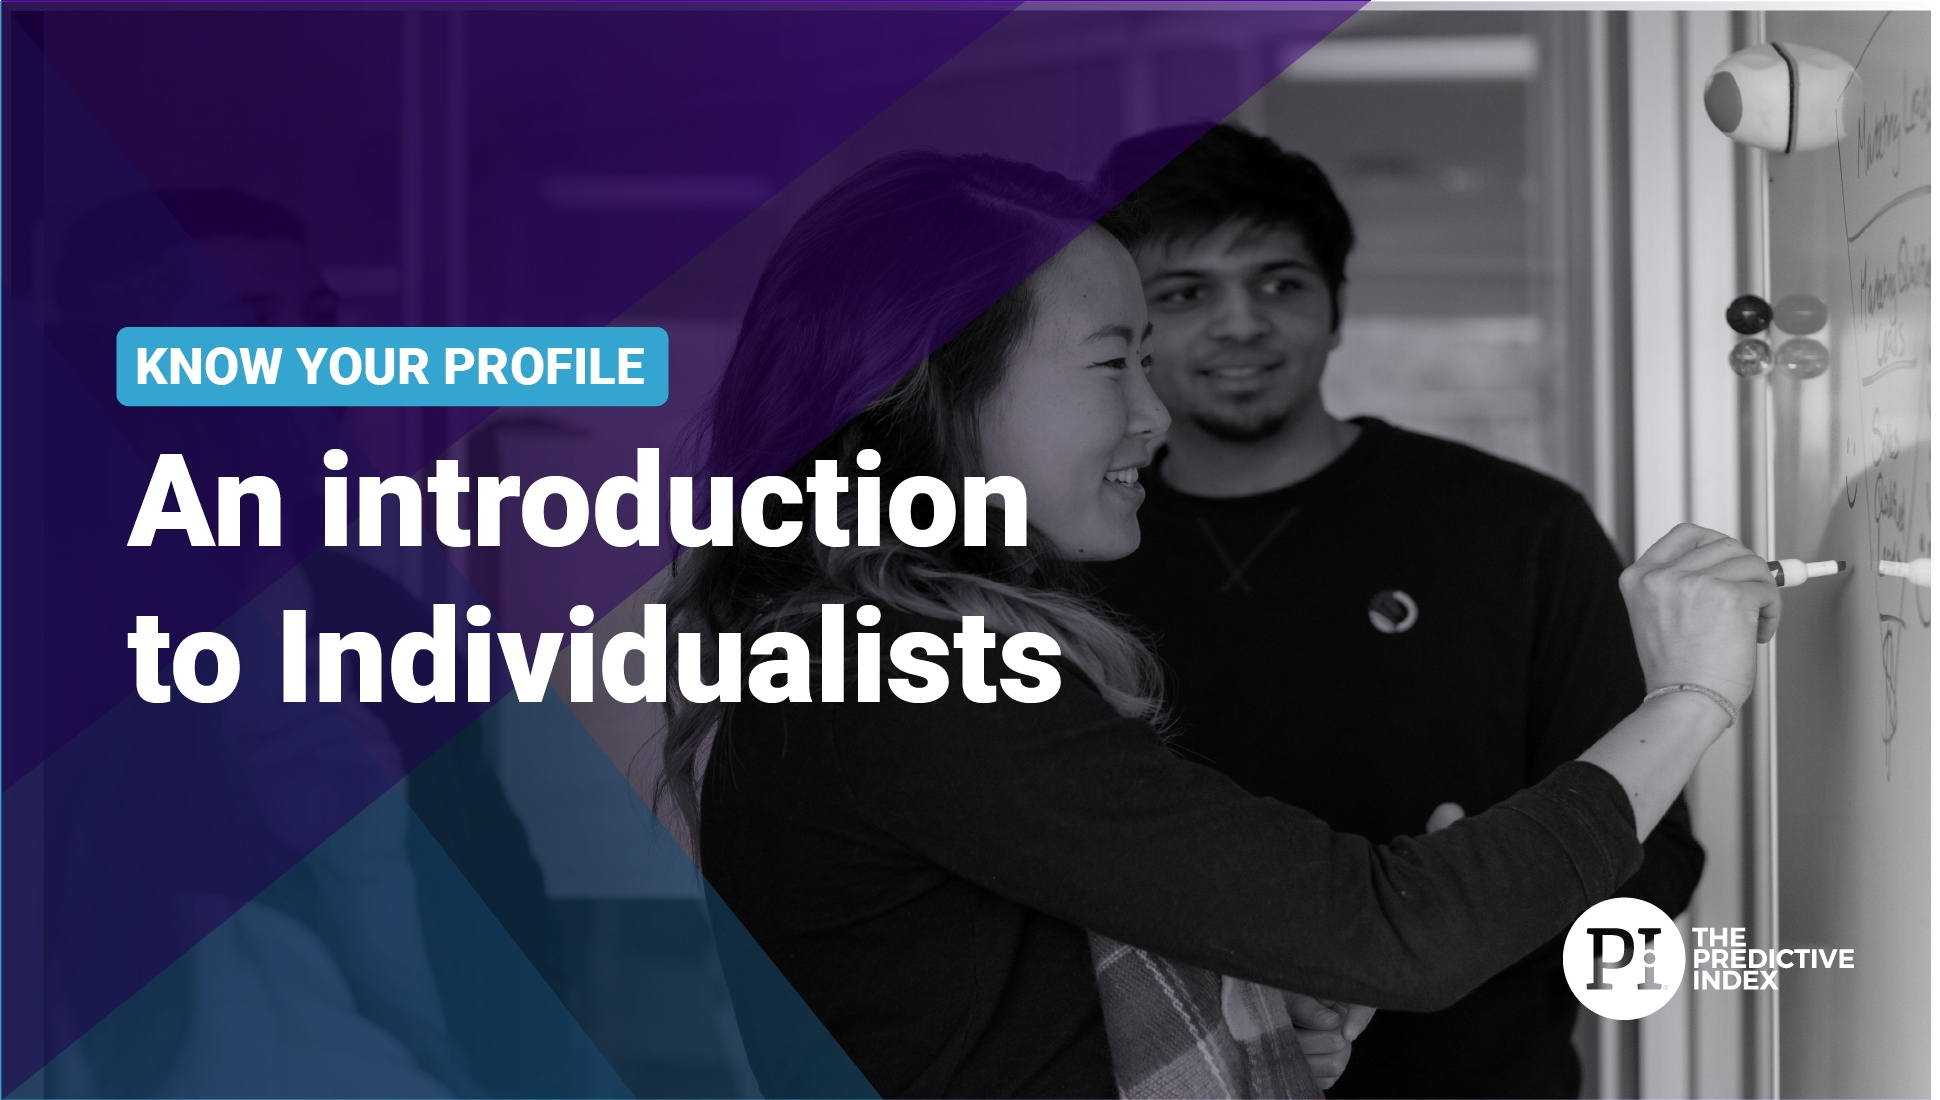 Introducing the Individualist